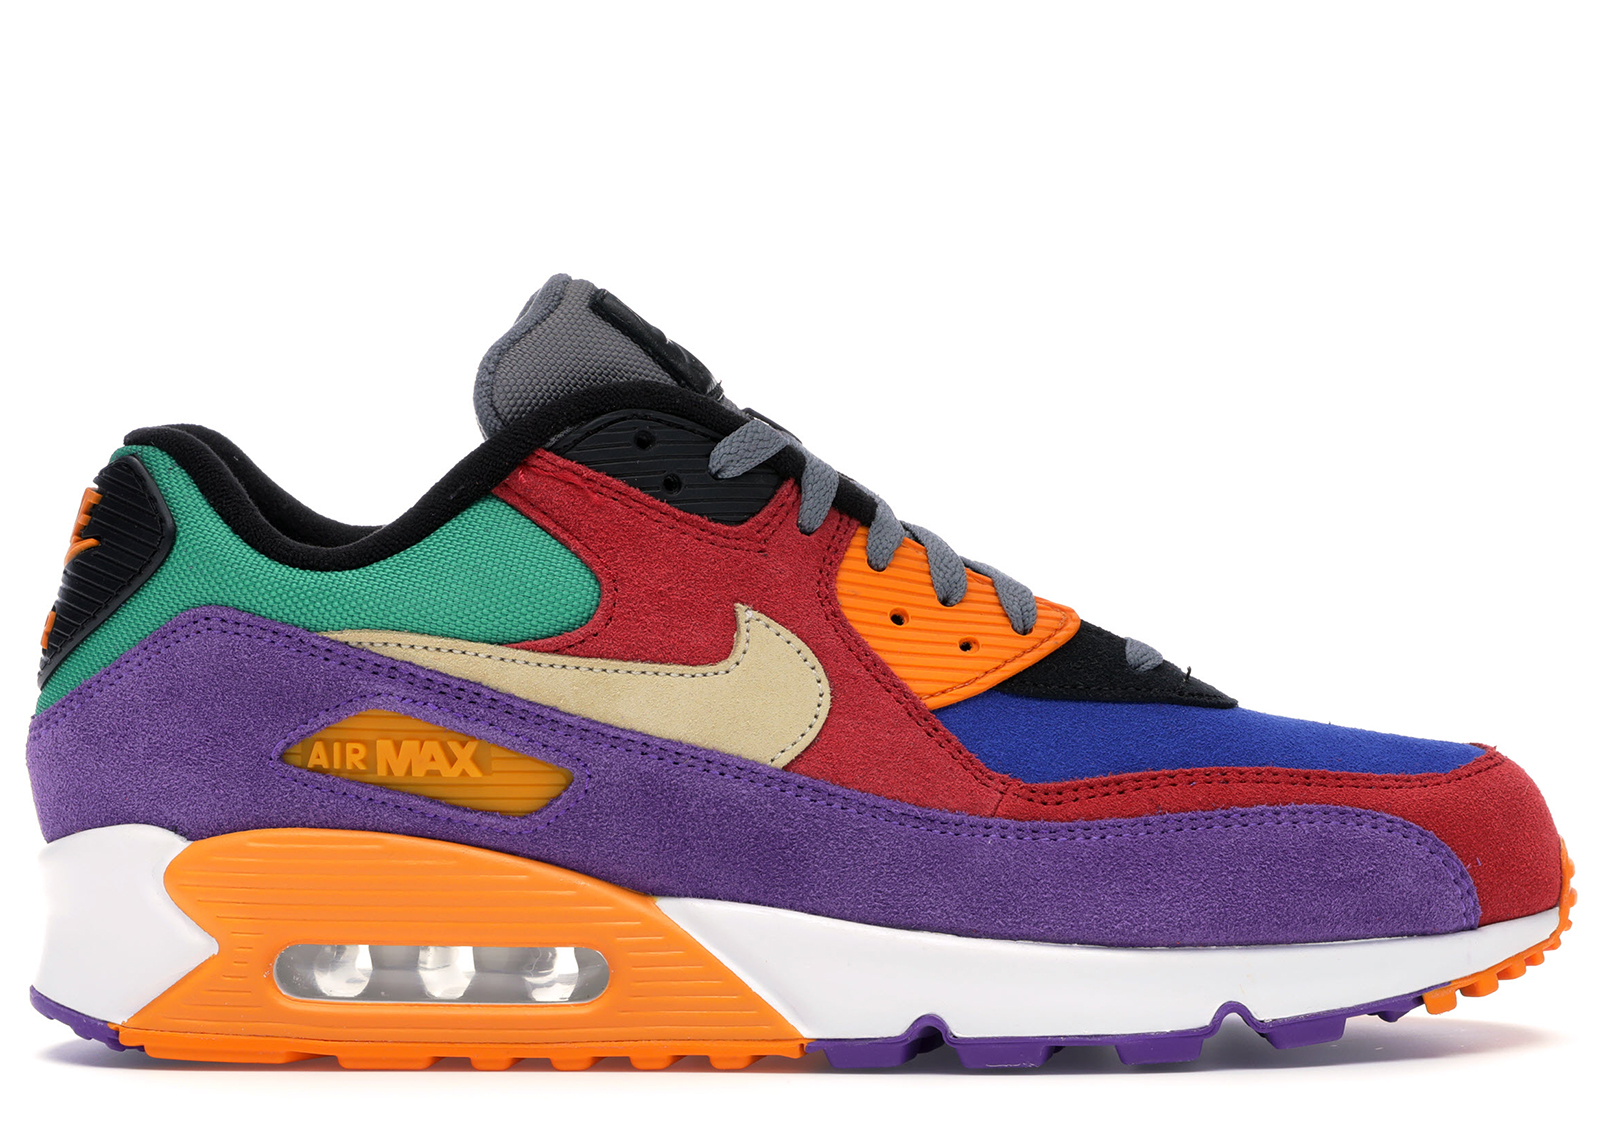 Nike Air Max 90 Candy Pink, Blau, Weiß Damen Sale UK